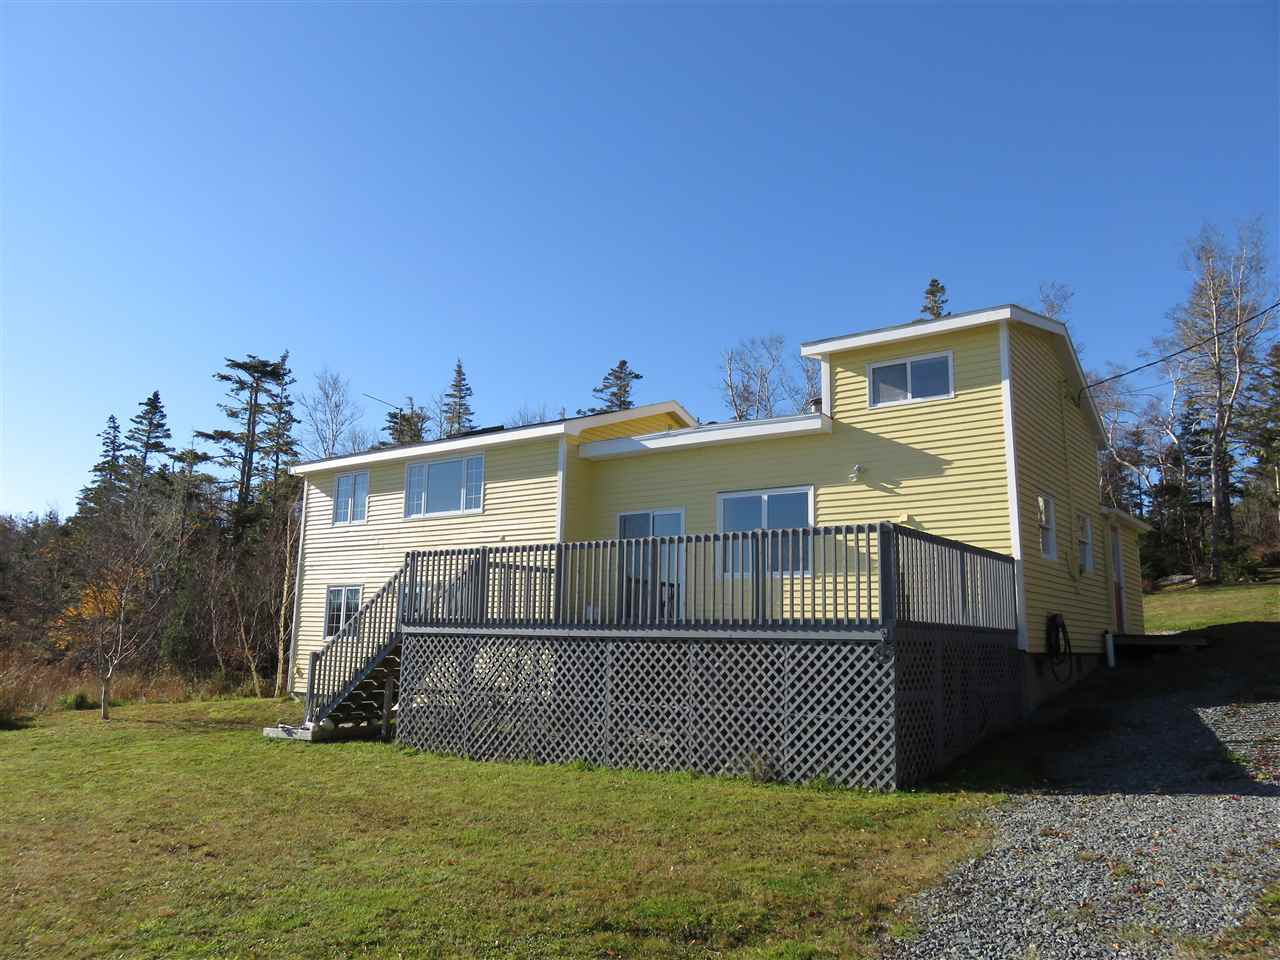 Main Photo: 783 WEST GREEN HARBOUR Road in West Green Harbour: 407-Shelburne County Residential for sale (South Shore)  : MLS(r) # 201701314